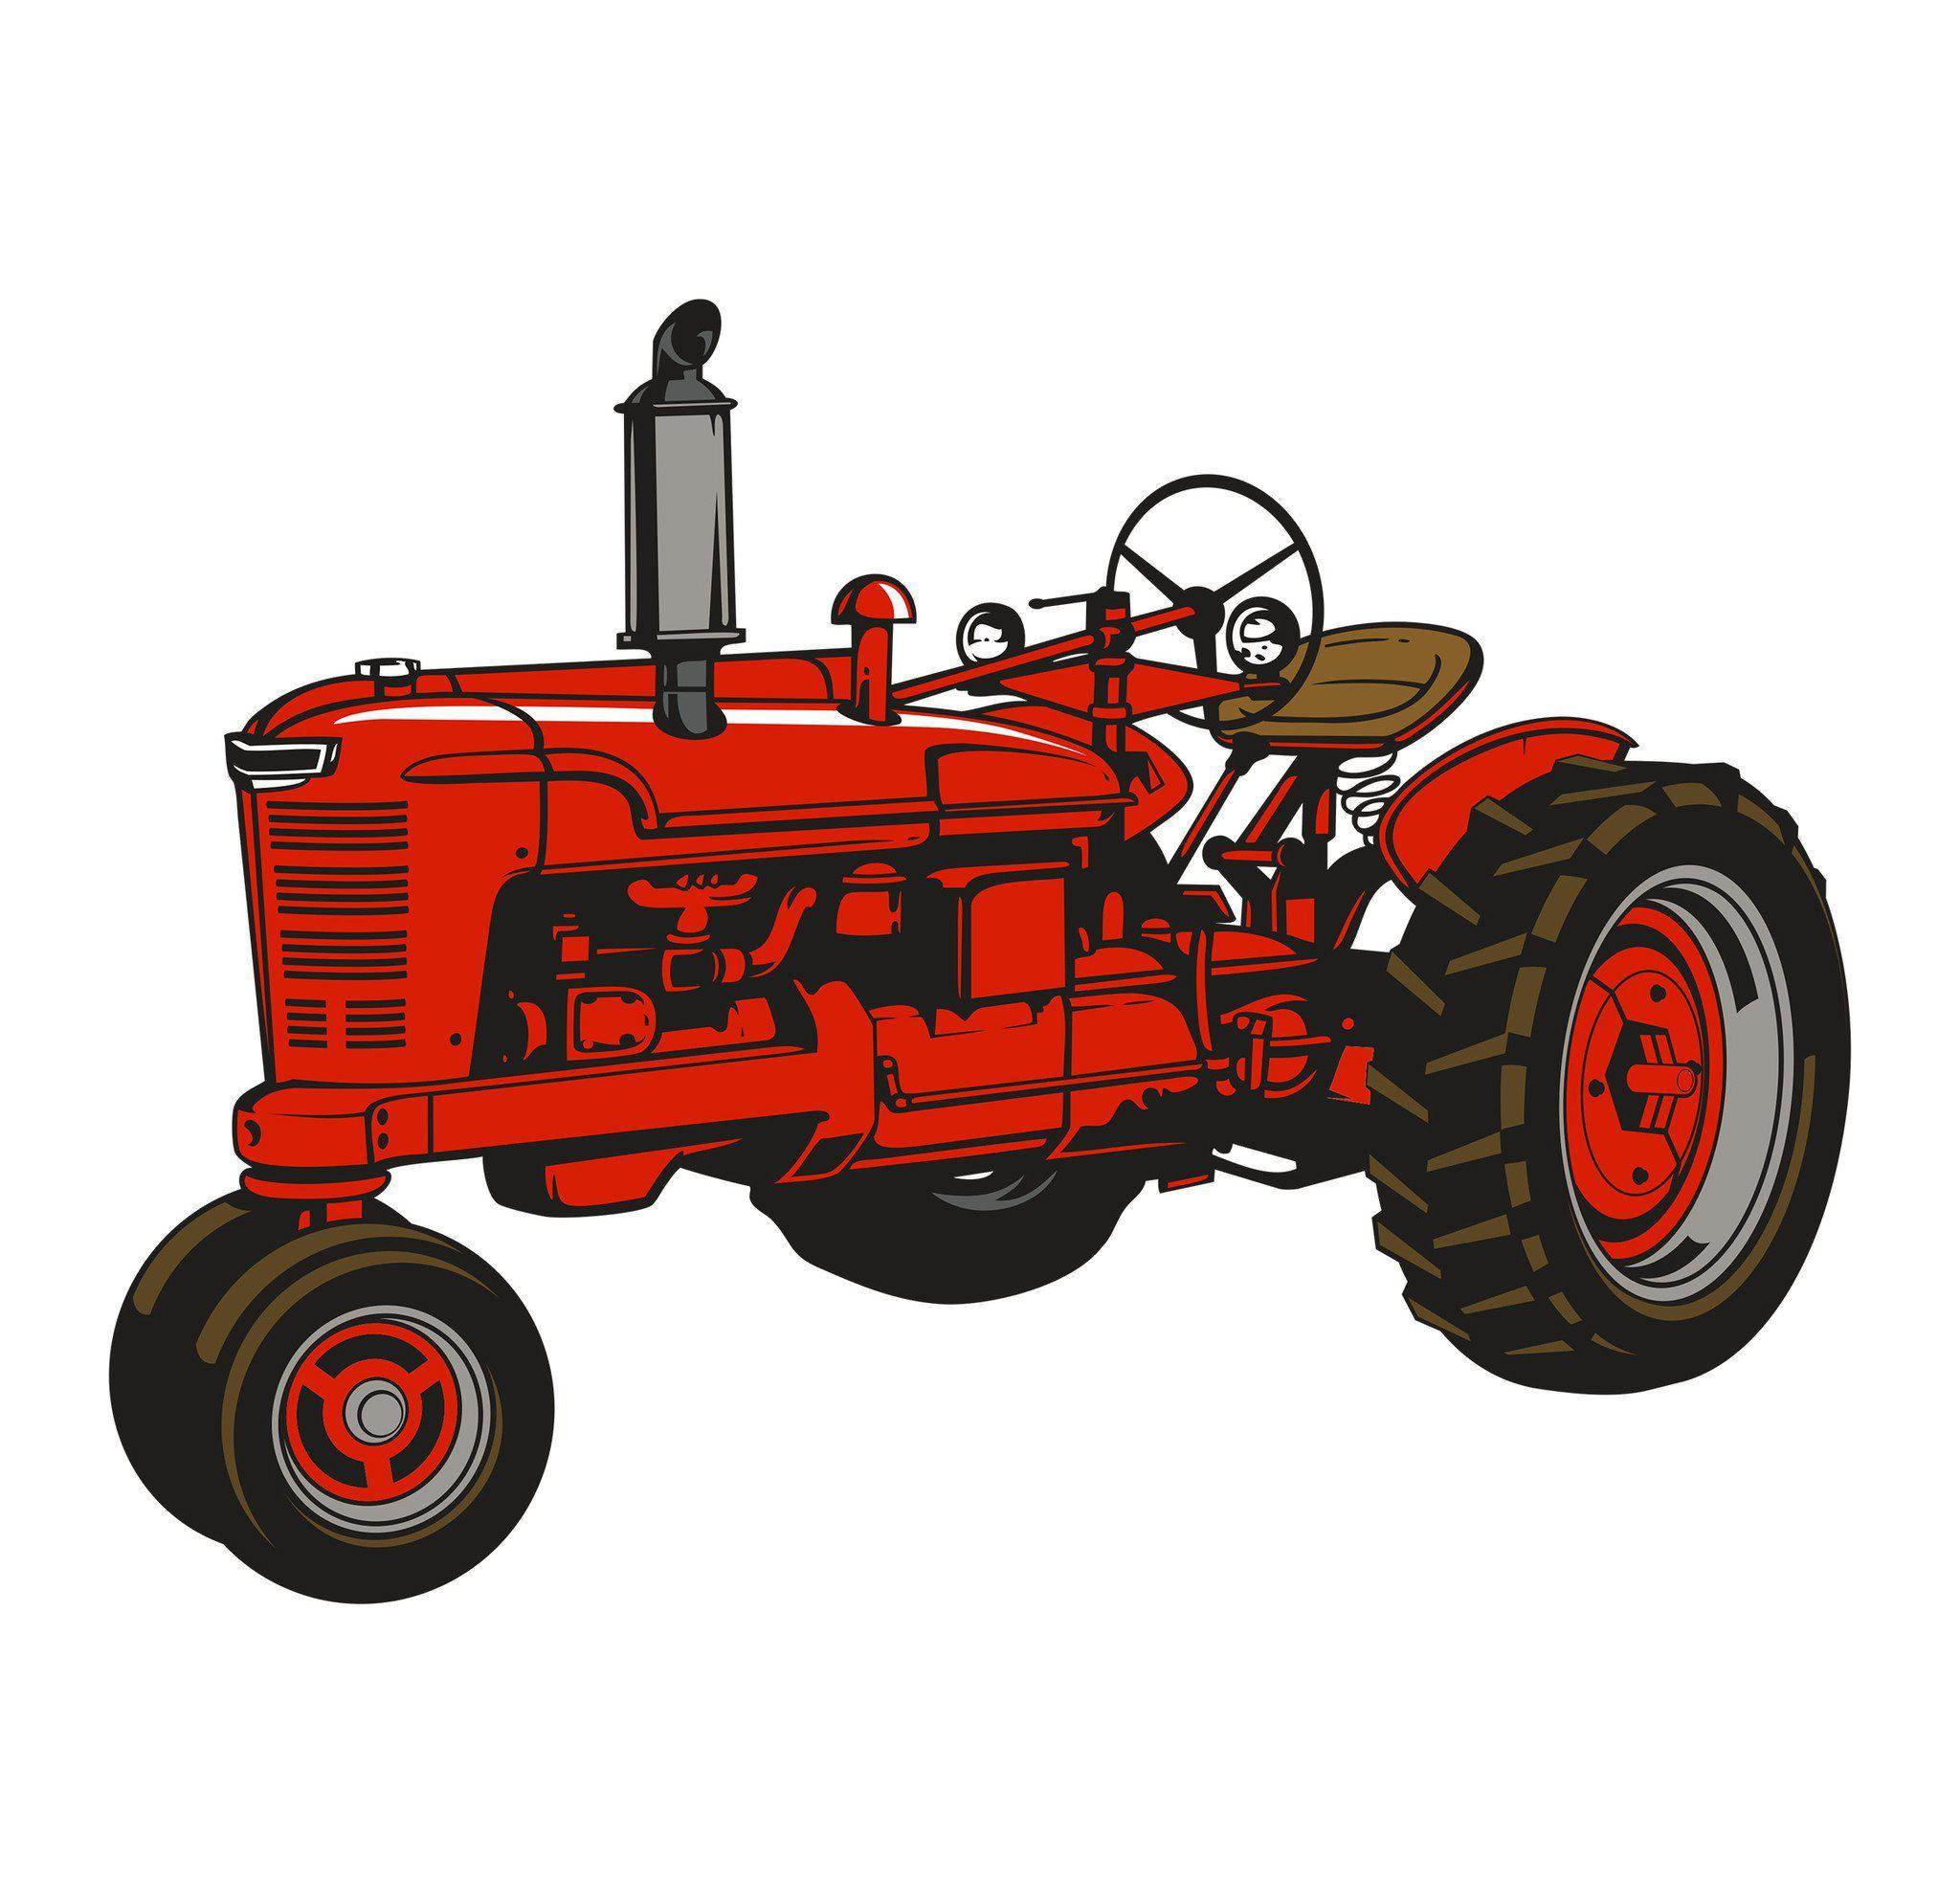 Old Tractor Clip Art : Old farmall tractor decal m h let s print big